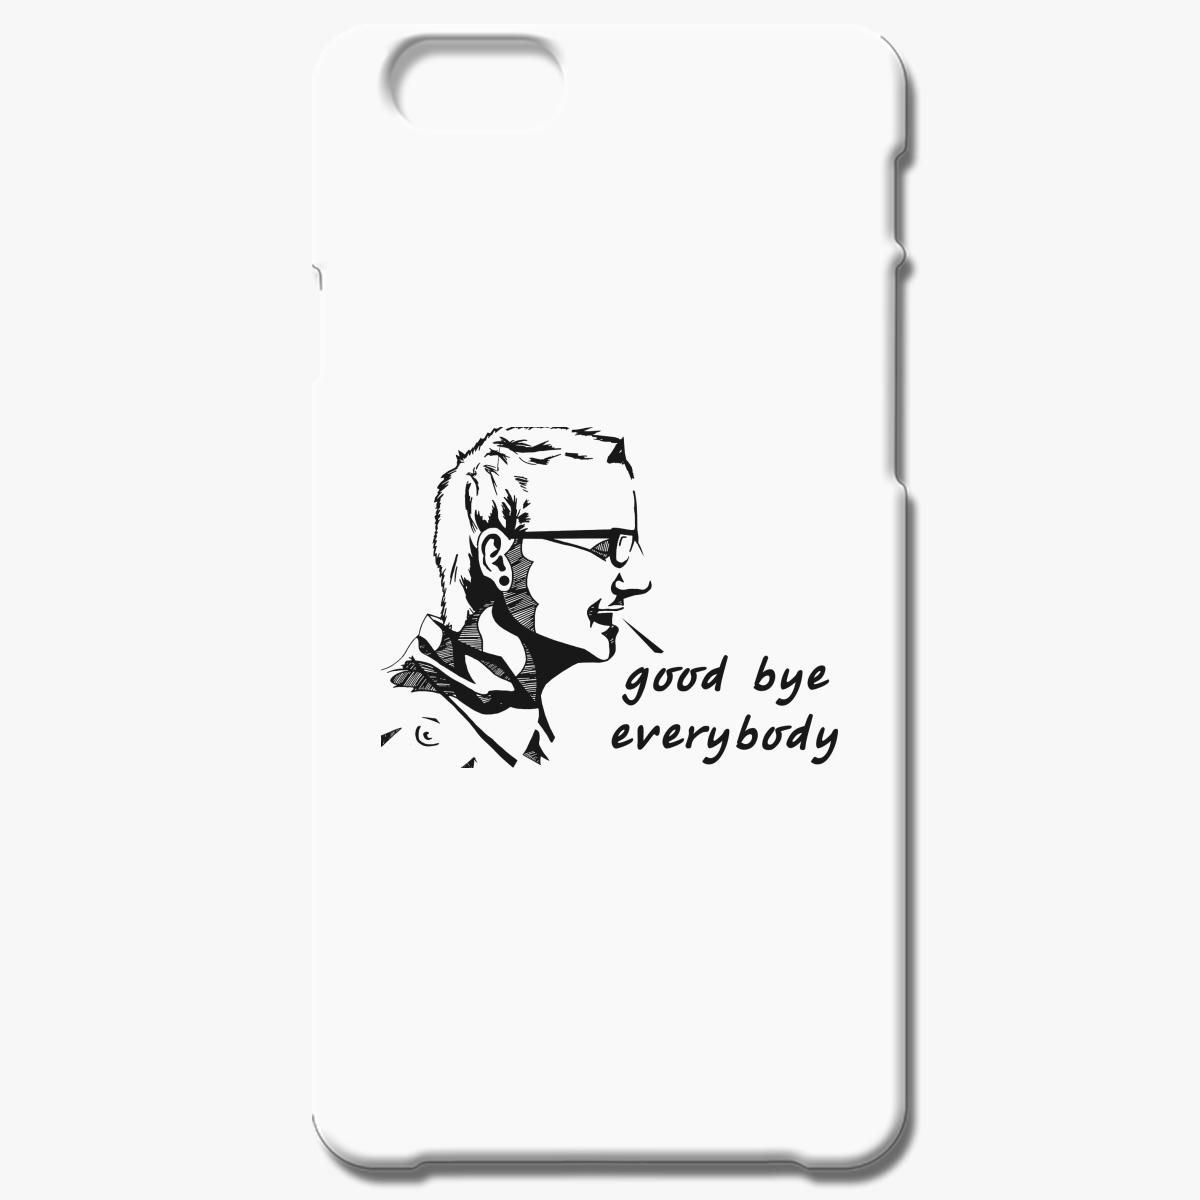 Rip Chester Bennington 3 Iphone 8 Plus Case